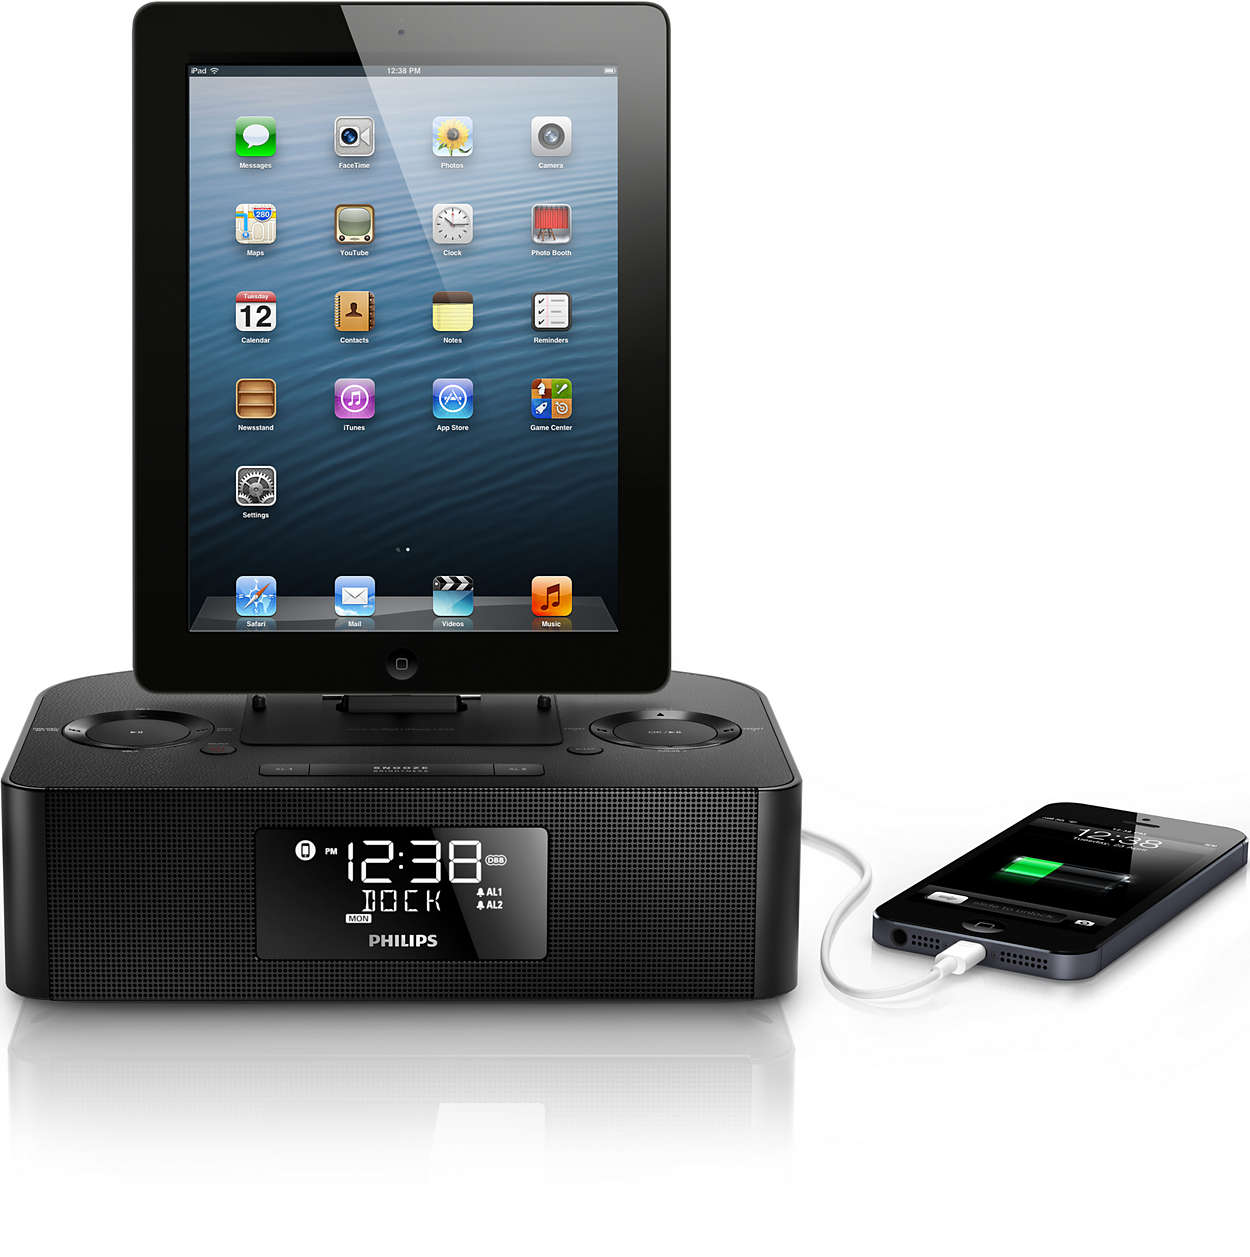 docking station for ipod iphone ipad aj7050d 37 philips. Black Bedroom Furniture Sets. Home Design Ideas